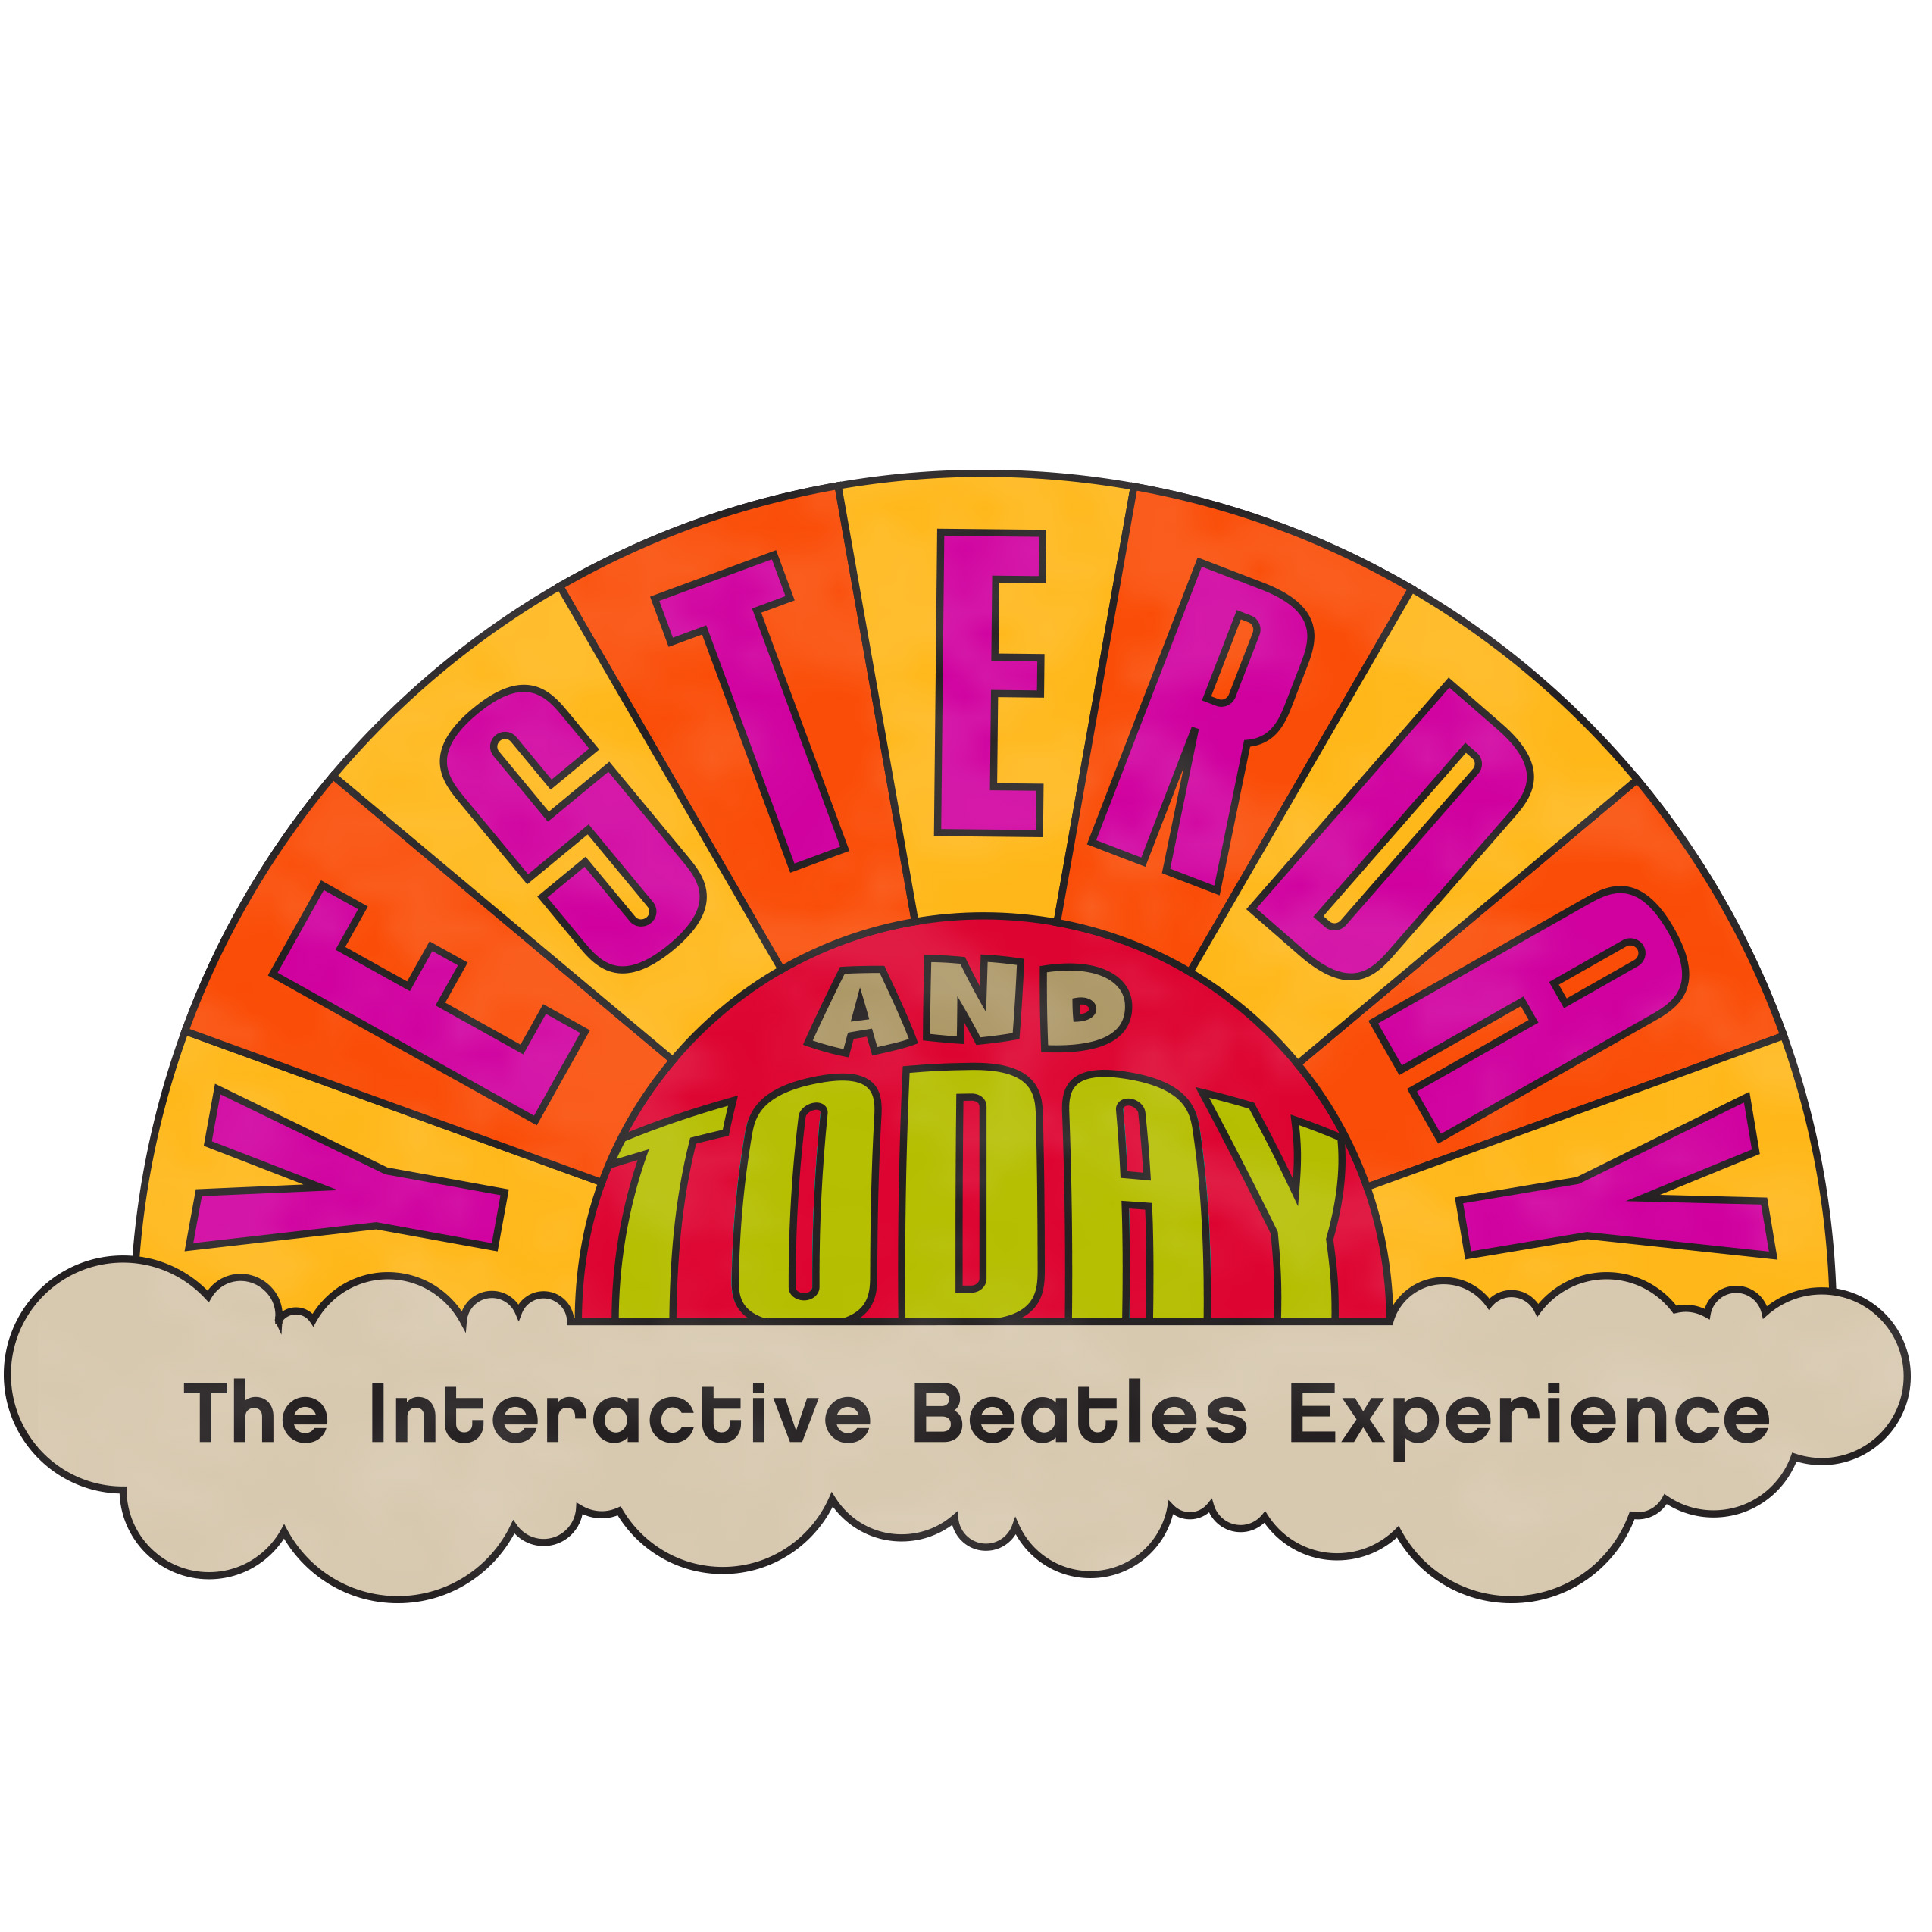 Yesterday And Today: The Interactive Beatles Experience: Main Image